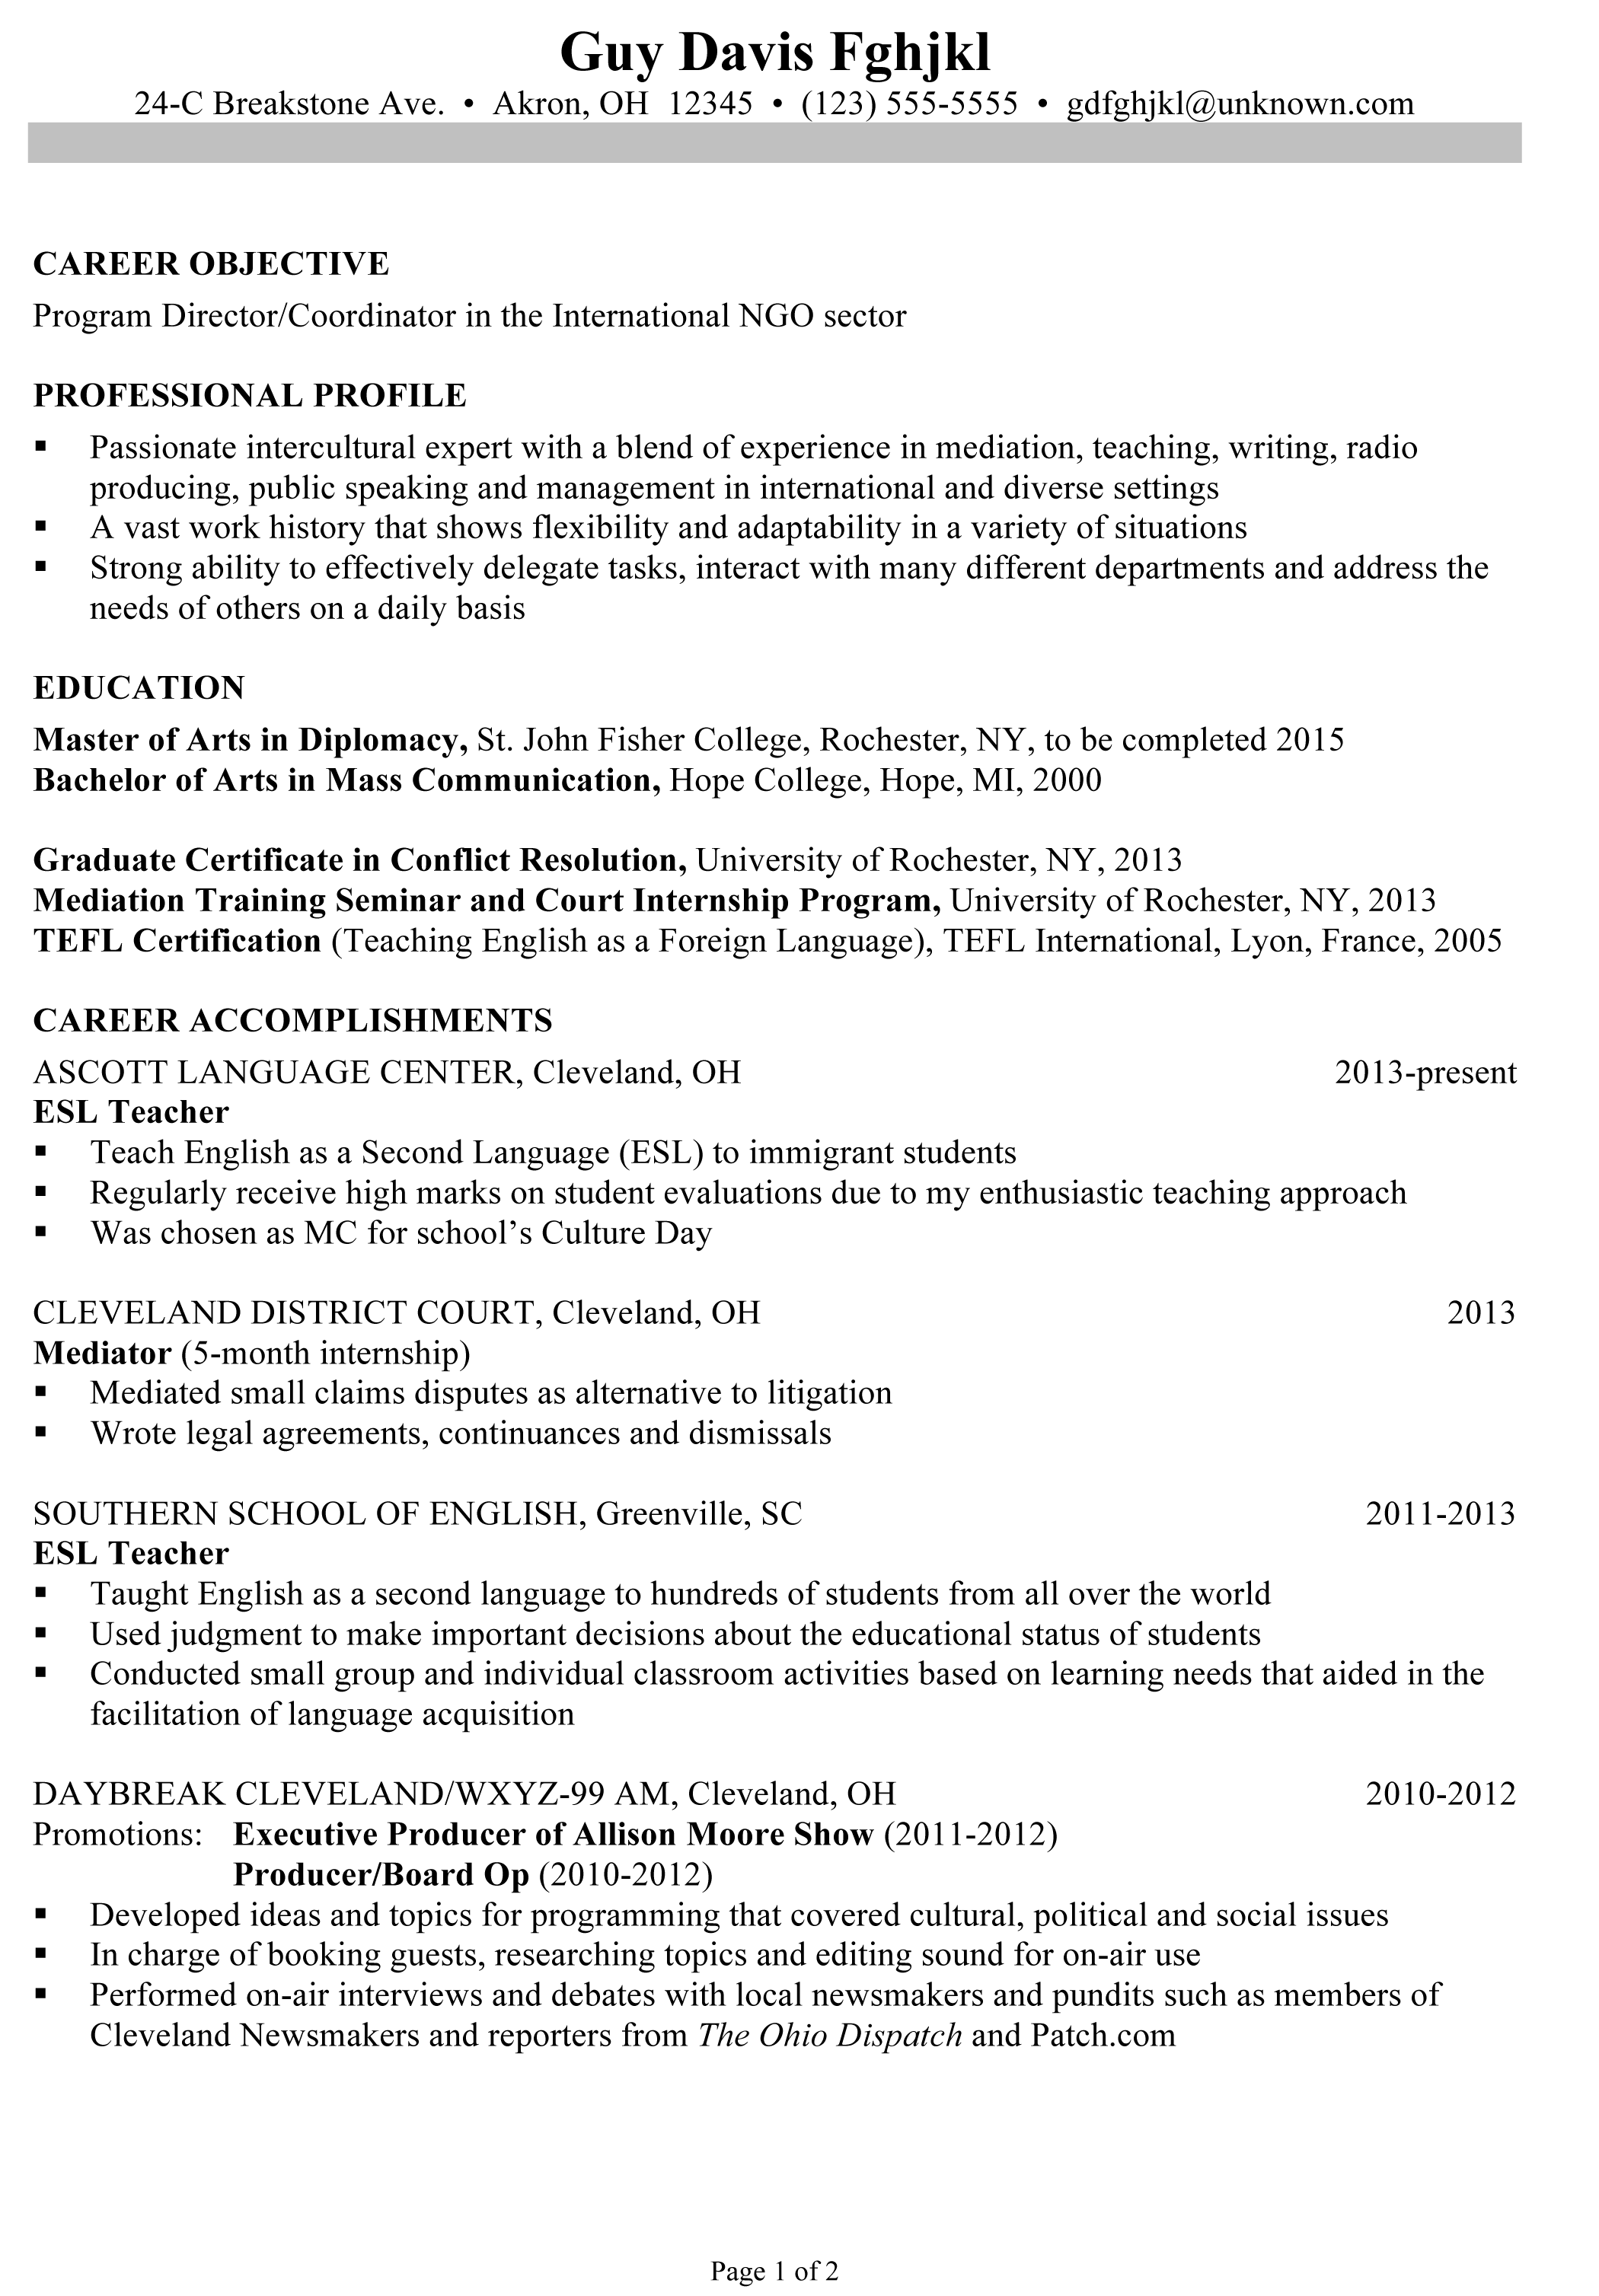 Career Objective On Resume Template Professional Summary Resume Example Best Templatesample Resumes